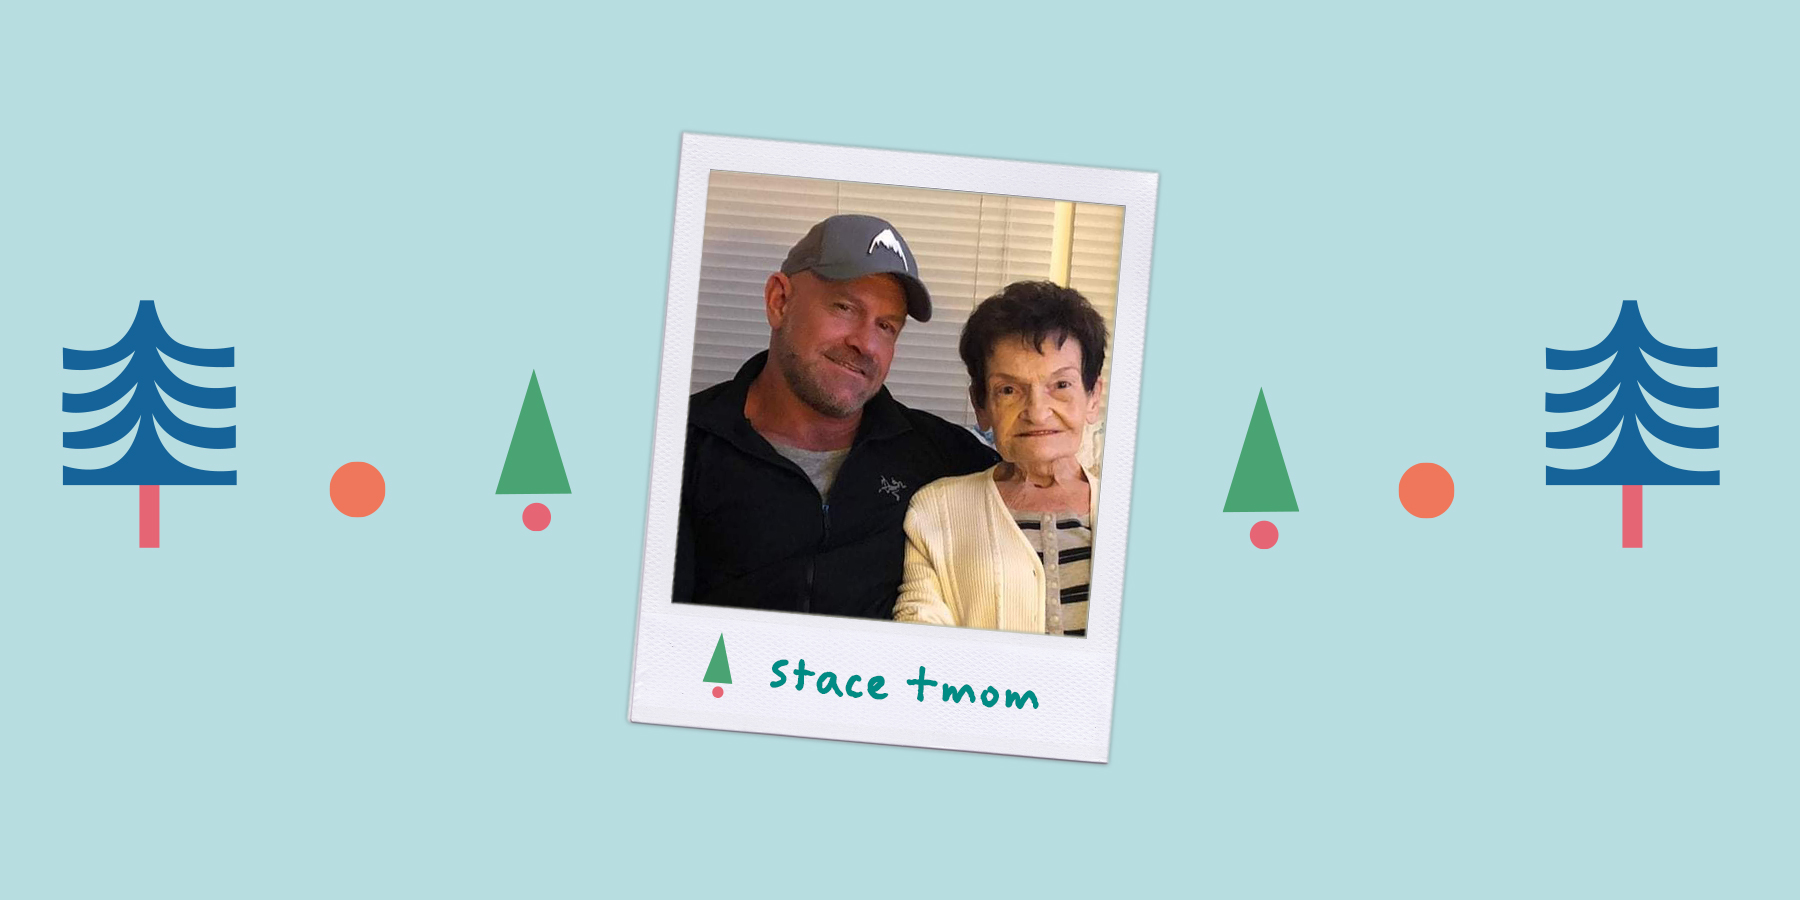 stace-updated